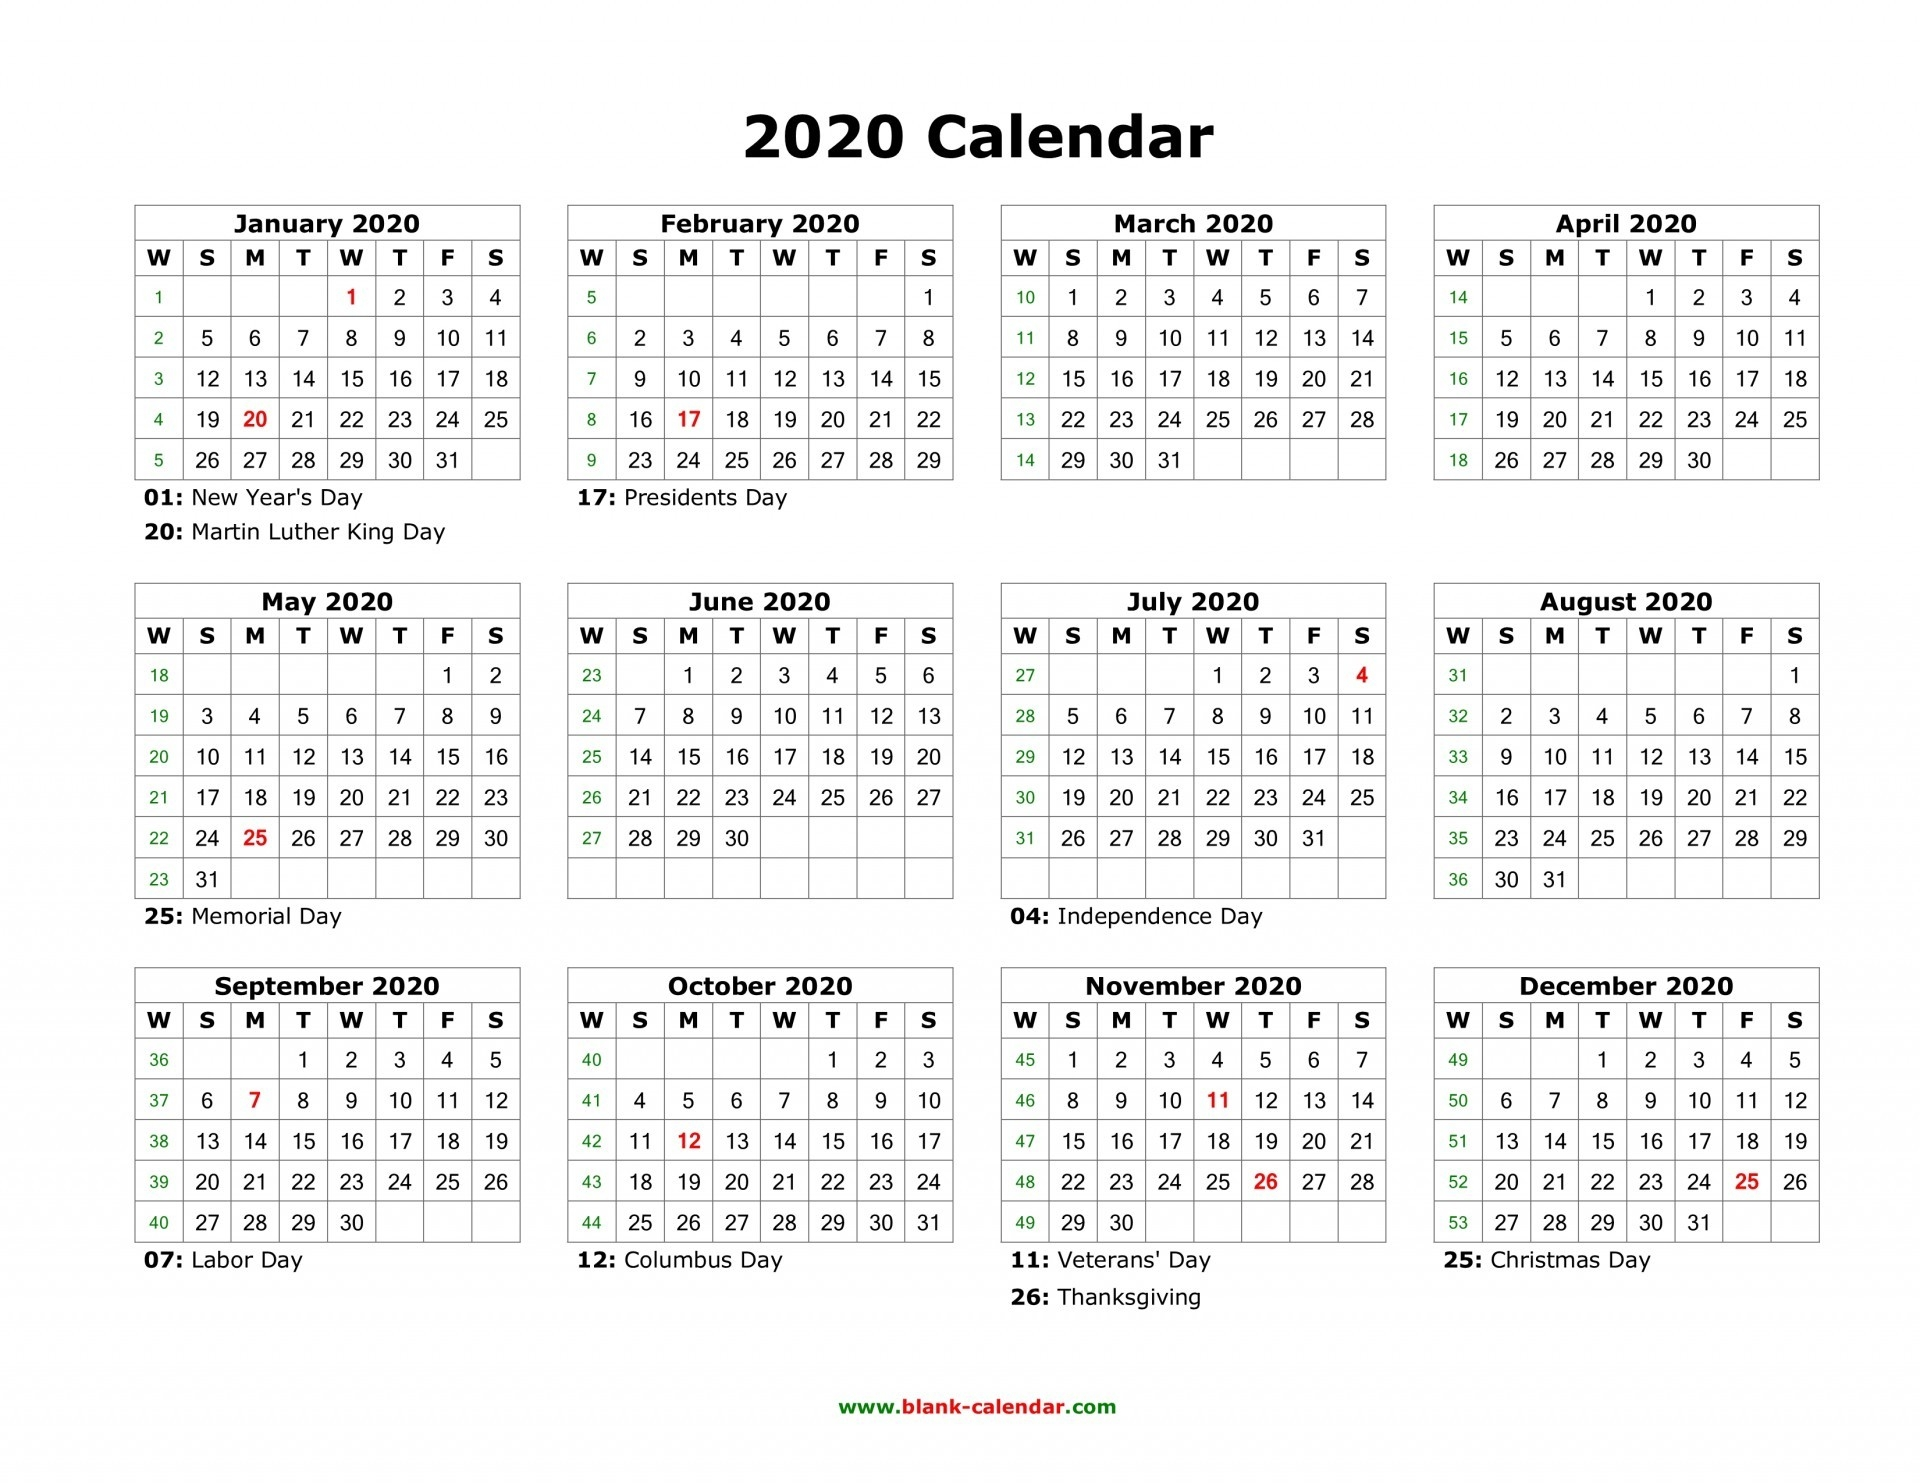 Free Printable 2020 Calendar With Holidays South Africa-Calendar 2020 With Holidays South Africa